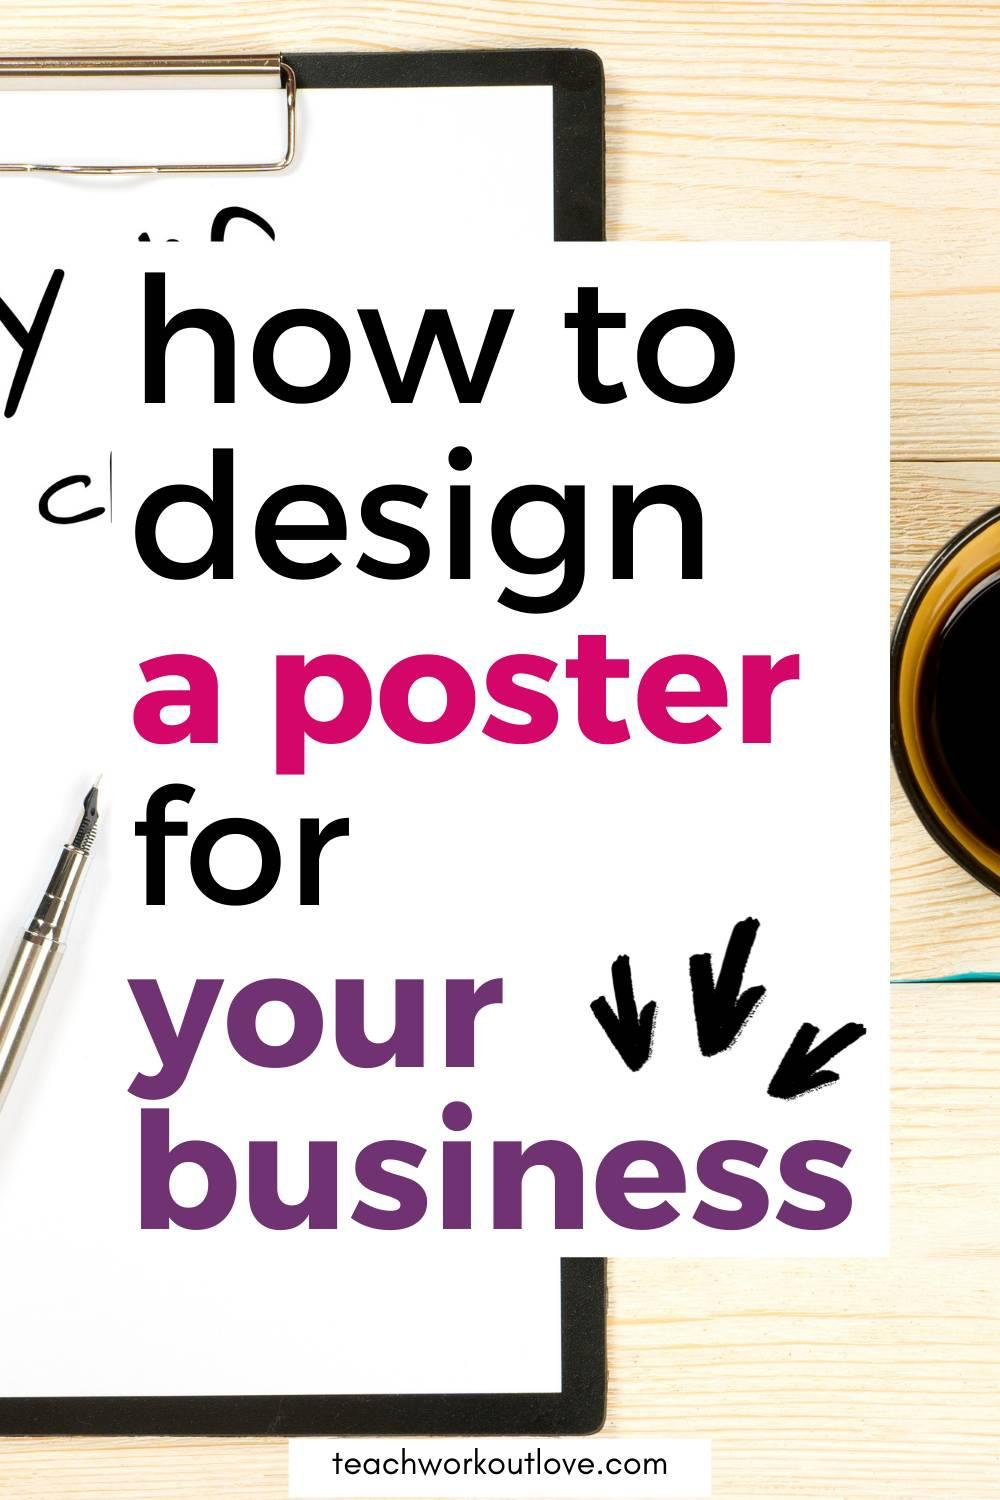 Looking for great ways to market your business? Here are some great tips to design a poster when making advertisements for your company.